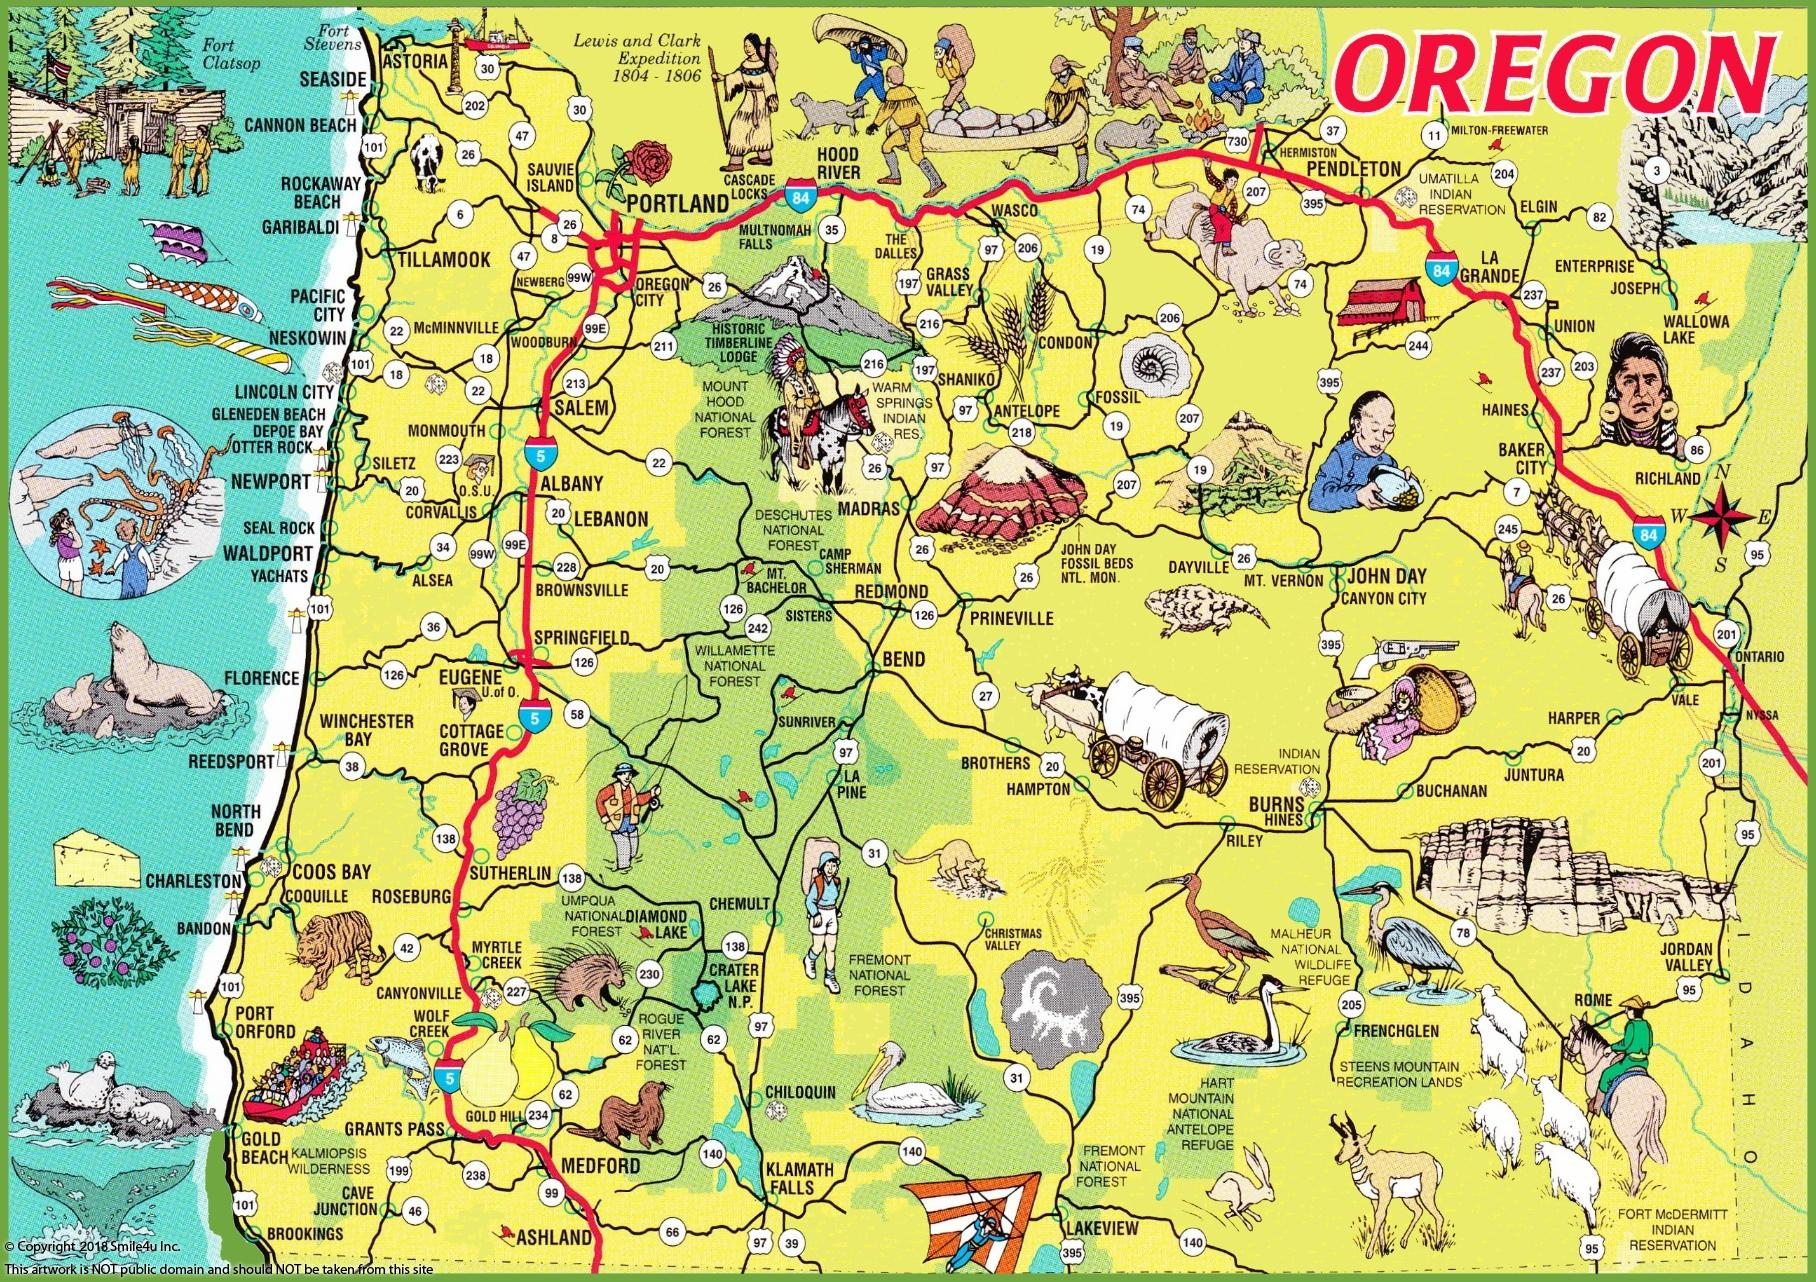 245340_watermarked_pictorial-travel-map-of-oregon.jpg